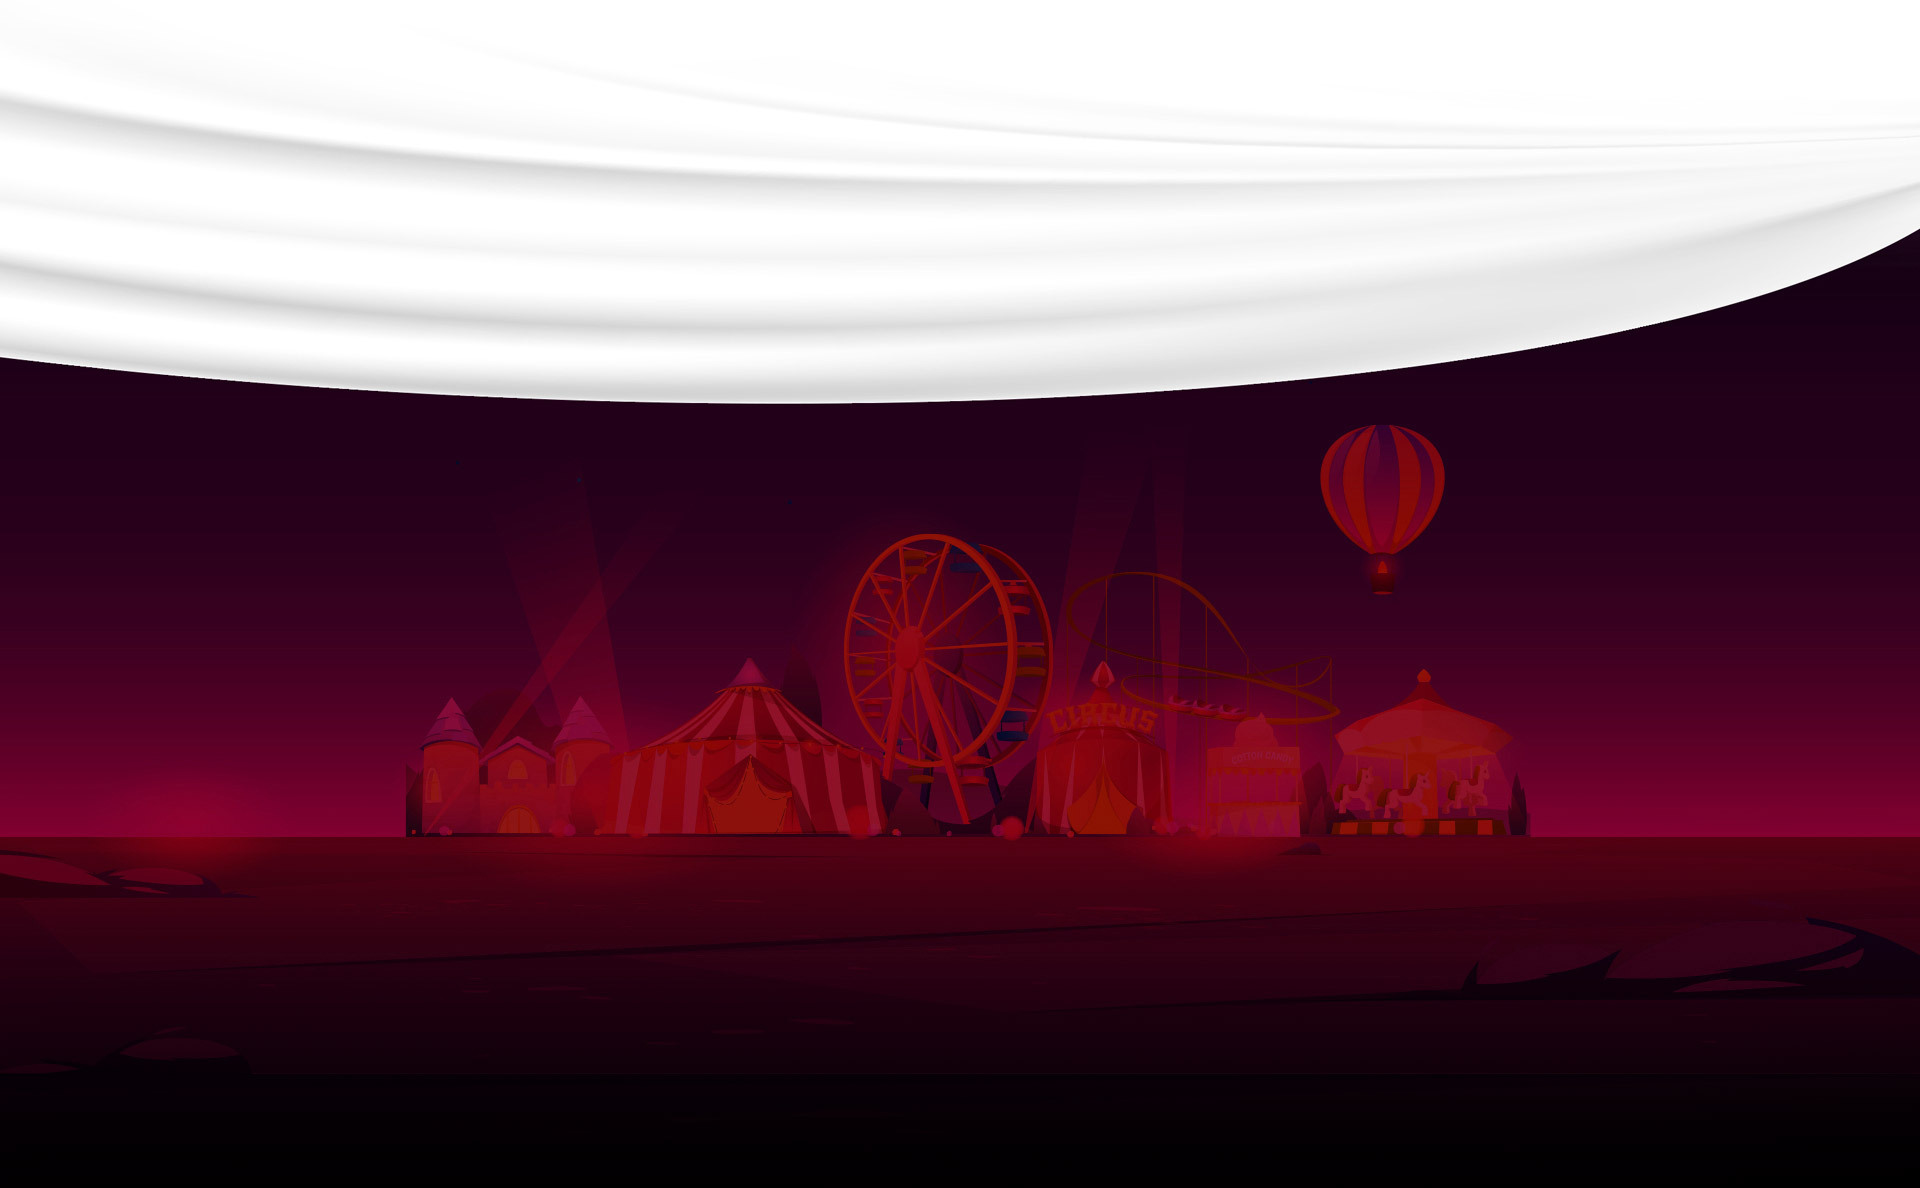 Full Circus footer image